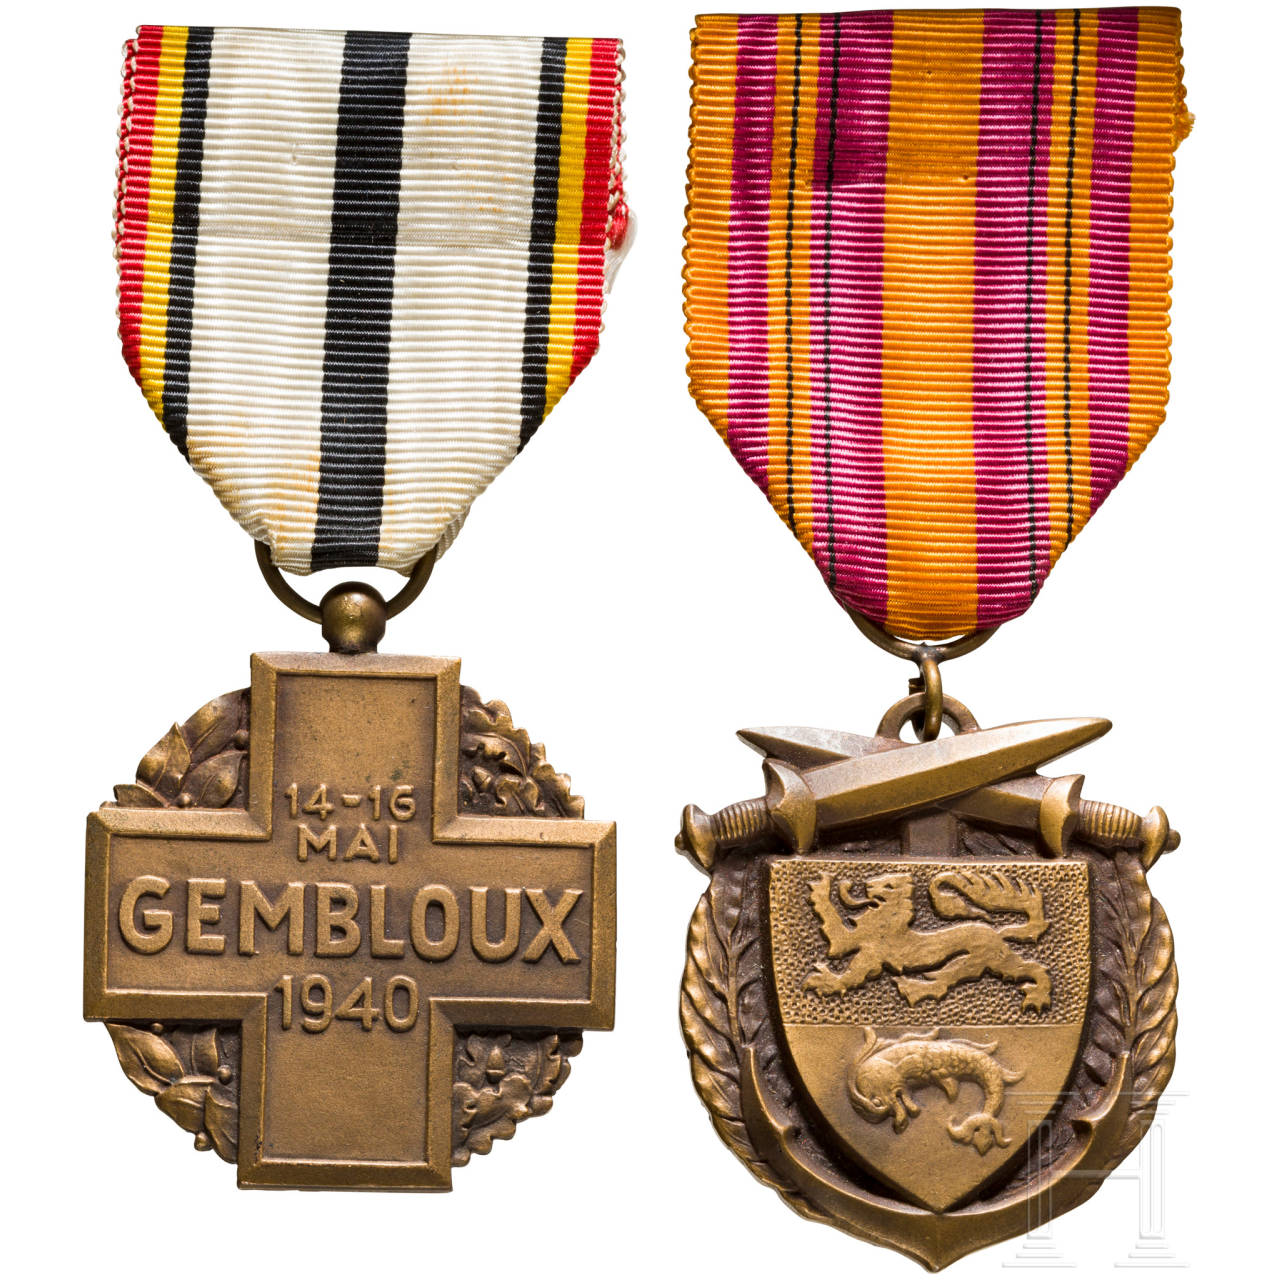 Two war medals, France, 1940